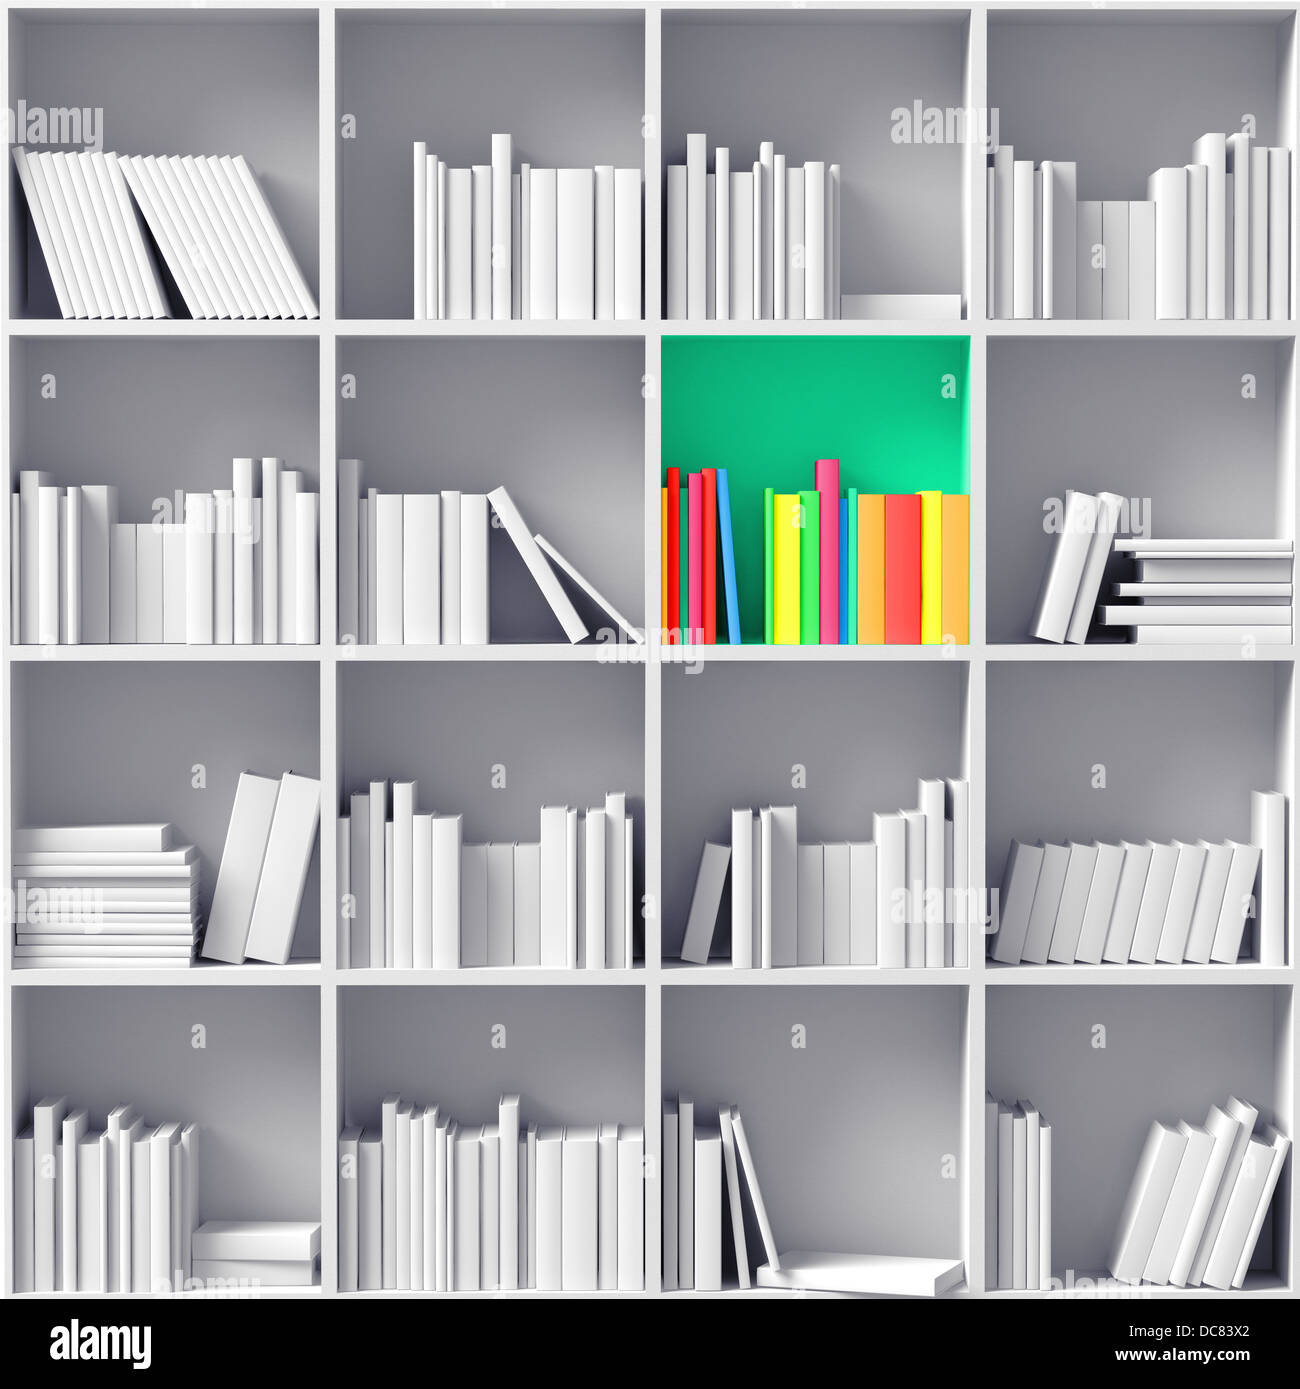 Bookshelves color - Stock Photo White Bookshelves With One Color Partition